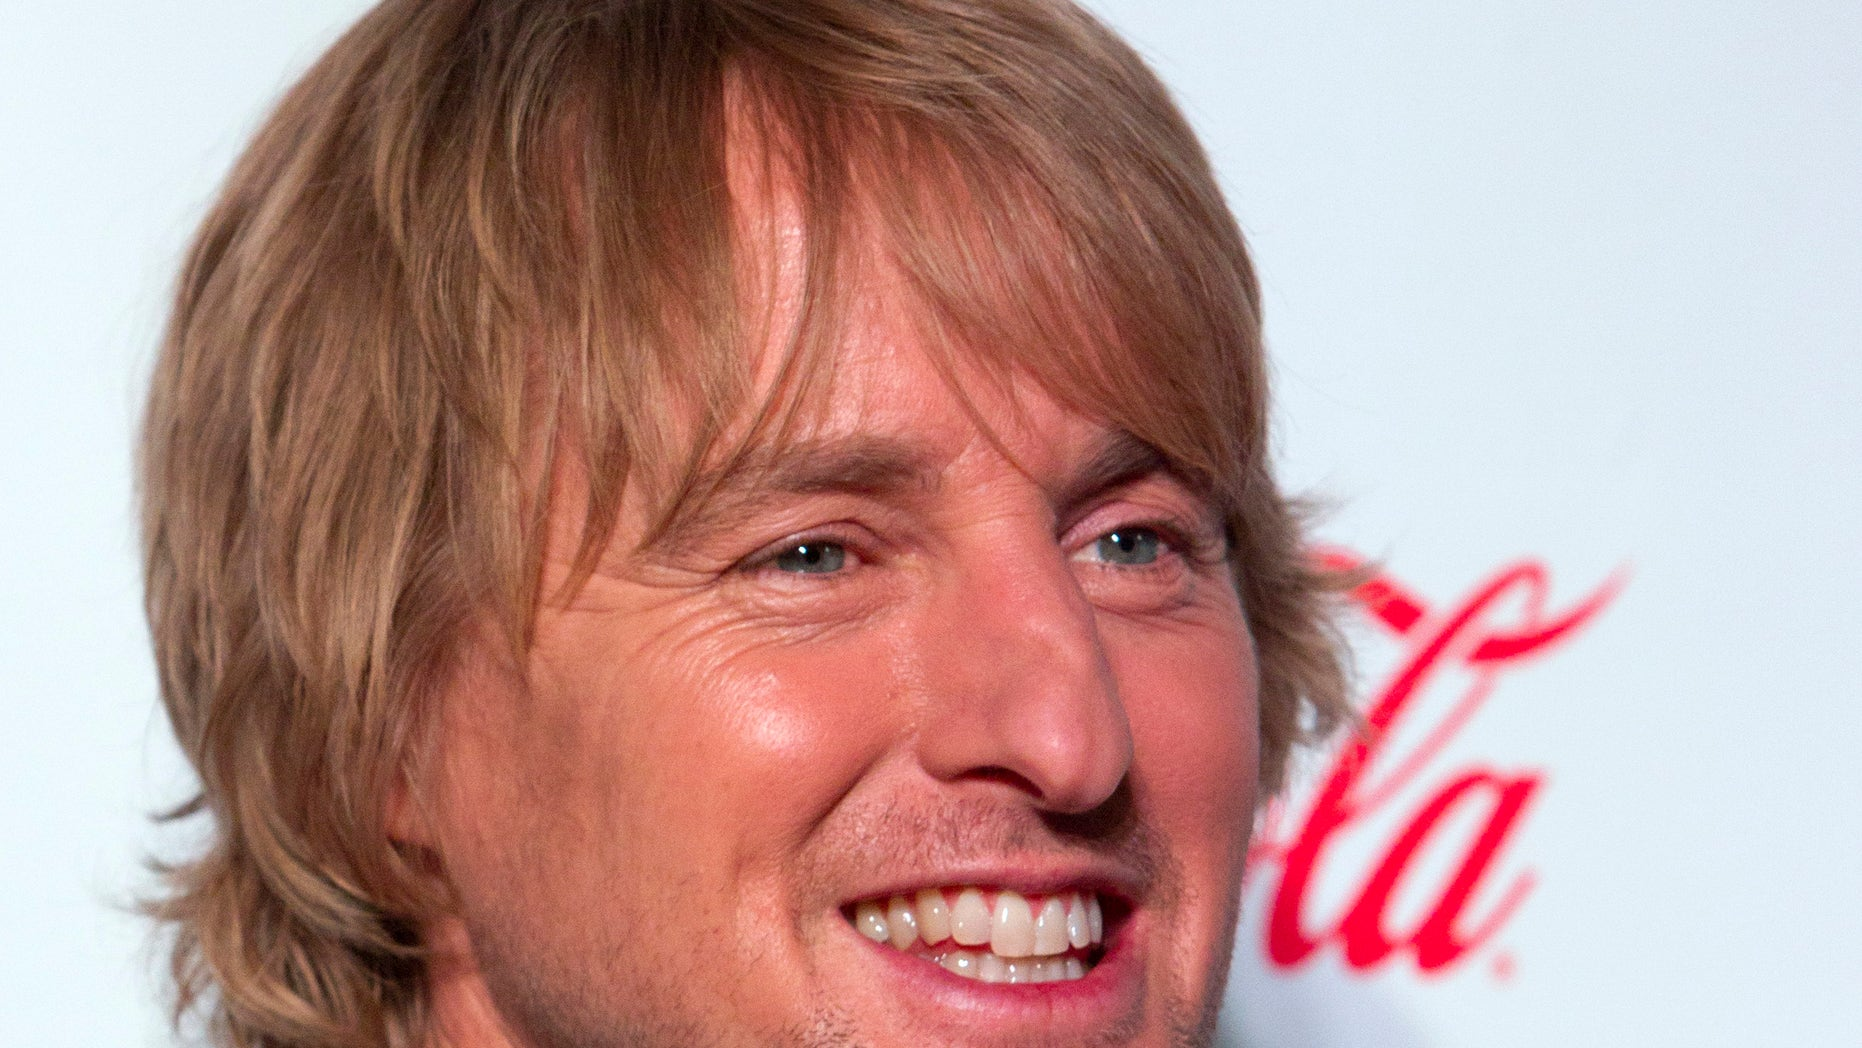 April 18, 2013. Owen Wilson arrives at the CinemaCon awards ceremony at Caesars Palace in Las Vegas, Nevada.